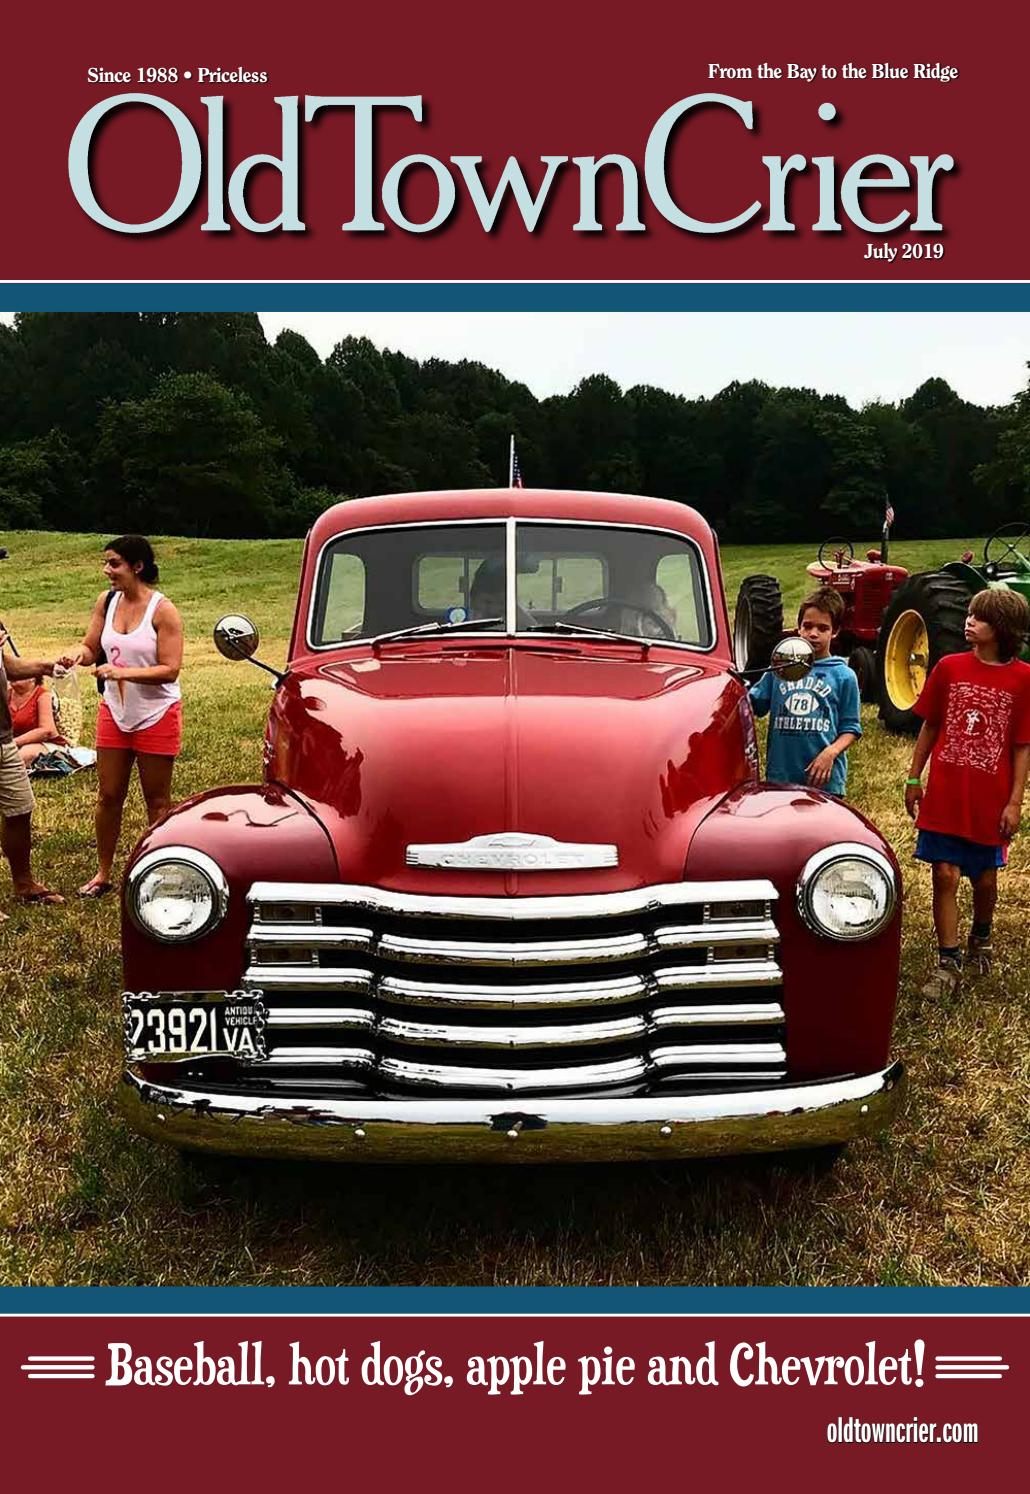 July By Crier 2019 Issuu Old Town Issue Full c5RjS34ALq